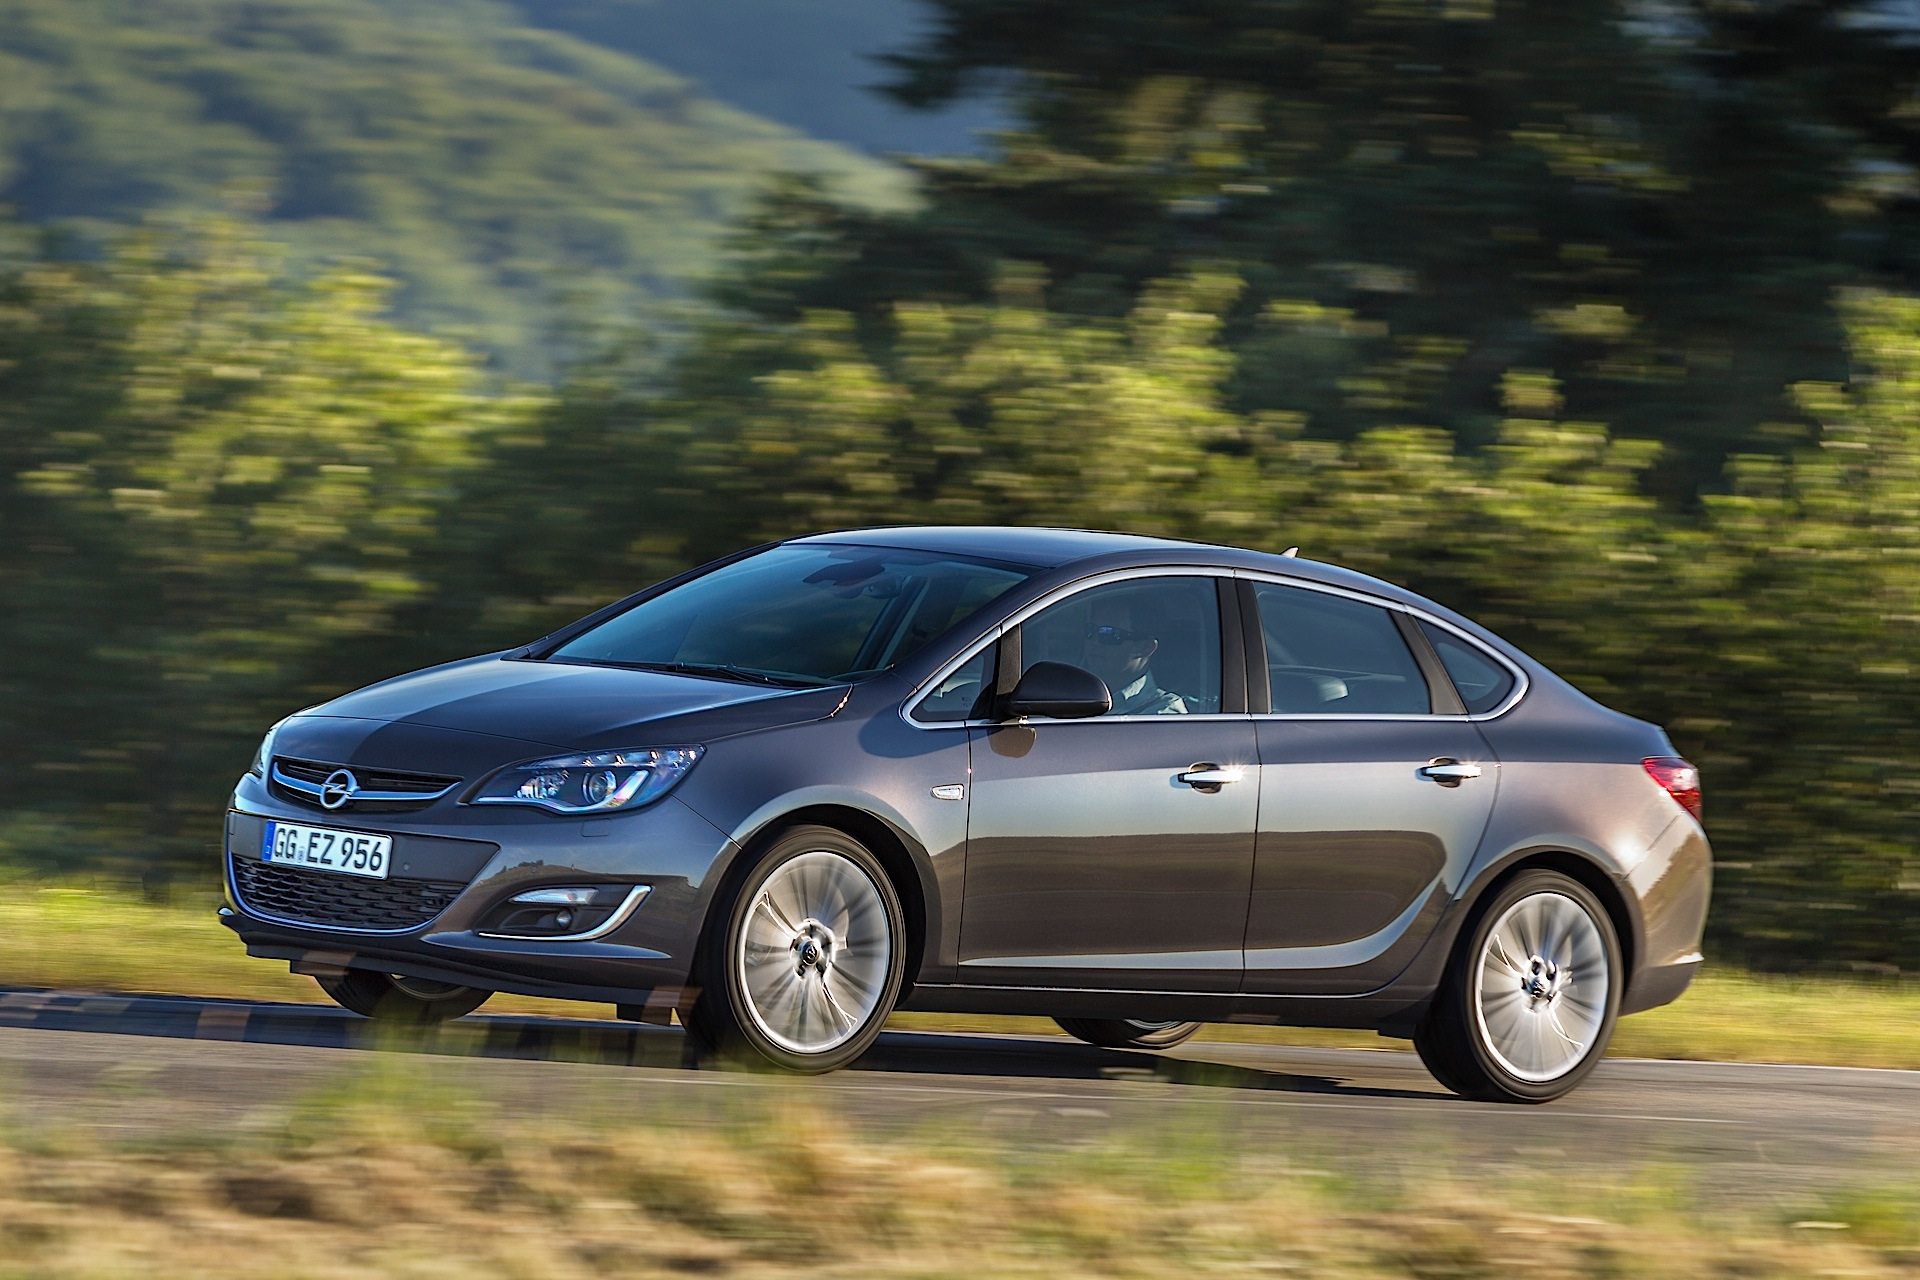 opel astra sport sedan specs 2012 2013 2014 2015 2016 2017 2018 autoevolution. Black Bedroom Furniture Sets. Home Design Ideas